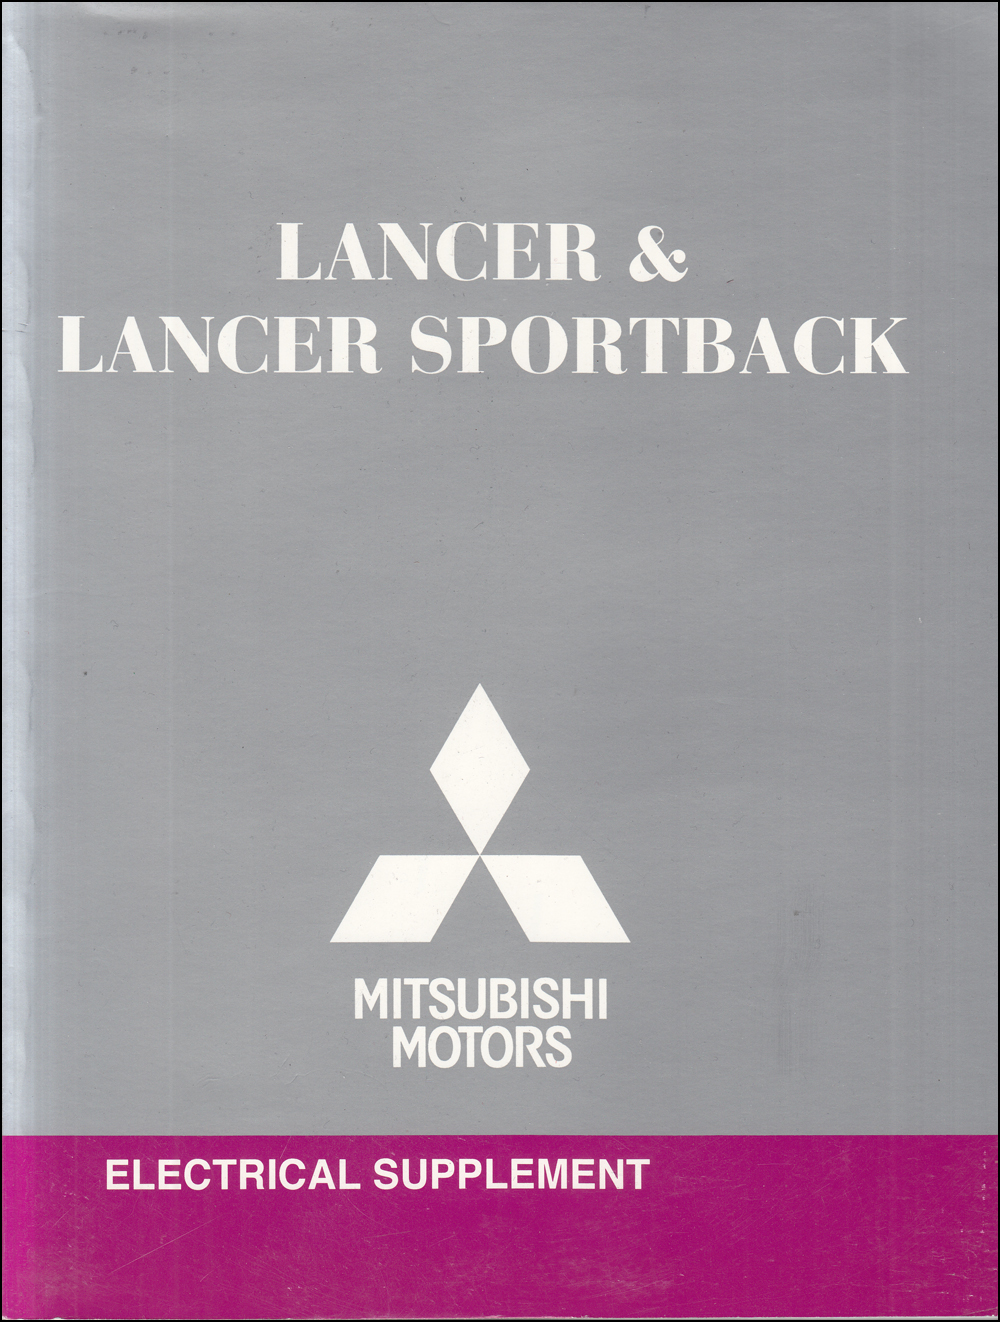 2011 Mitsubishi Lancer & Lancer Sportback Wiring Diagram Manual Original